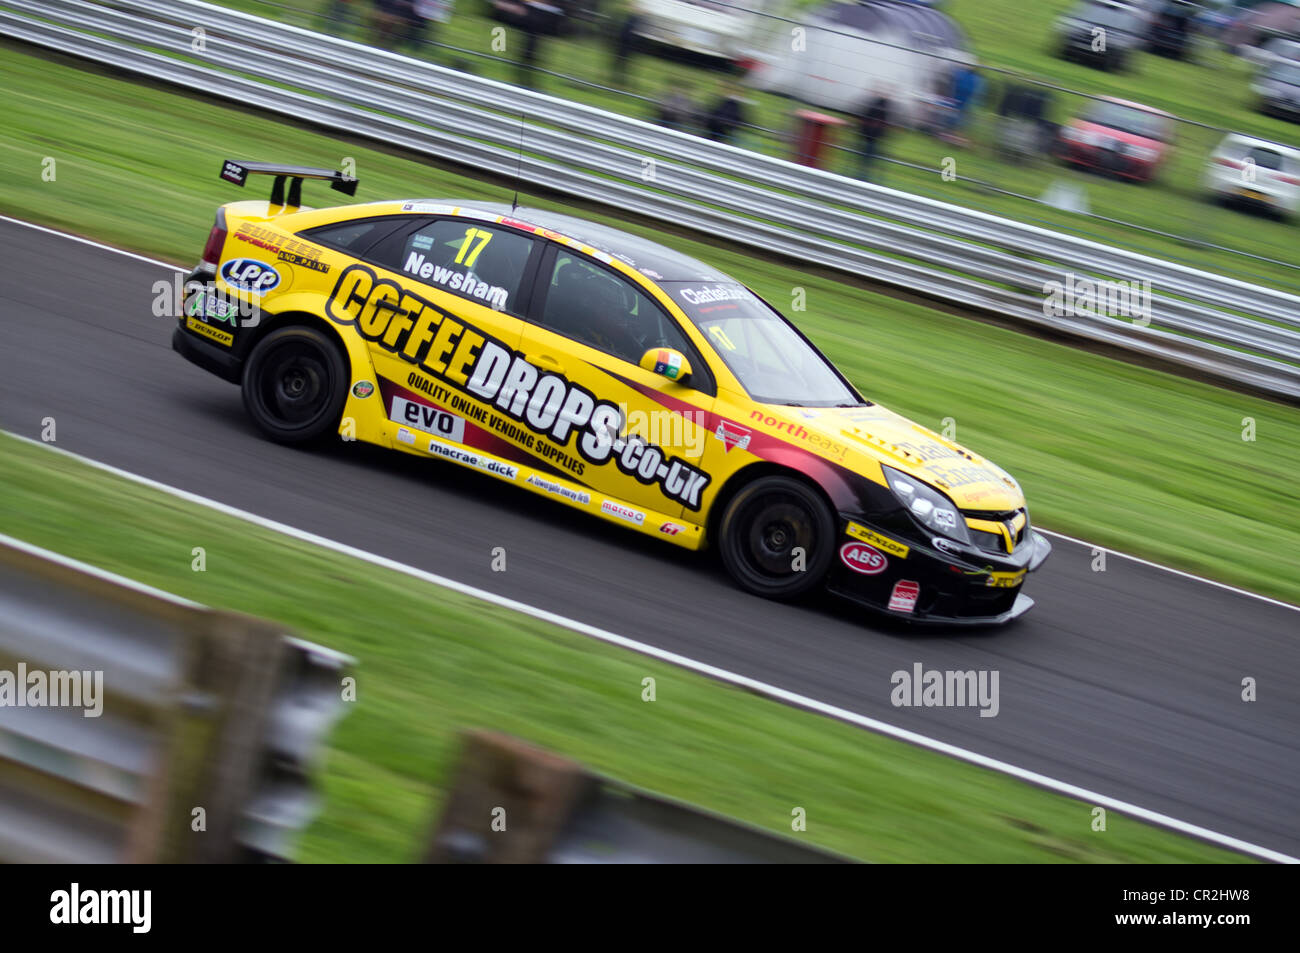 Newsham in his Toyota during the practice session of the British Touring Cars at Oulton Park, England, June 9th - Stock Image